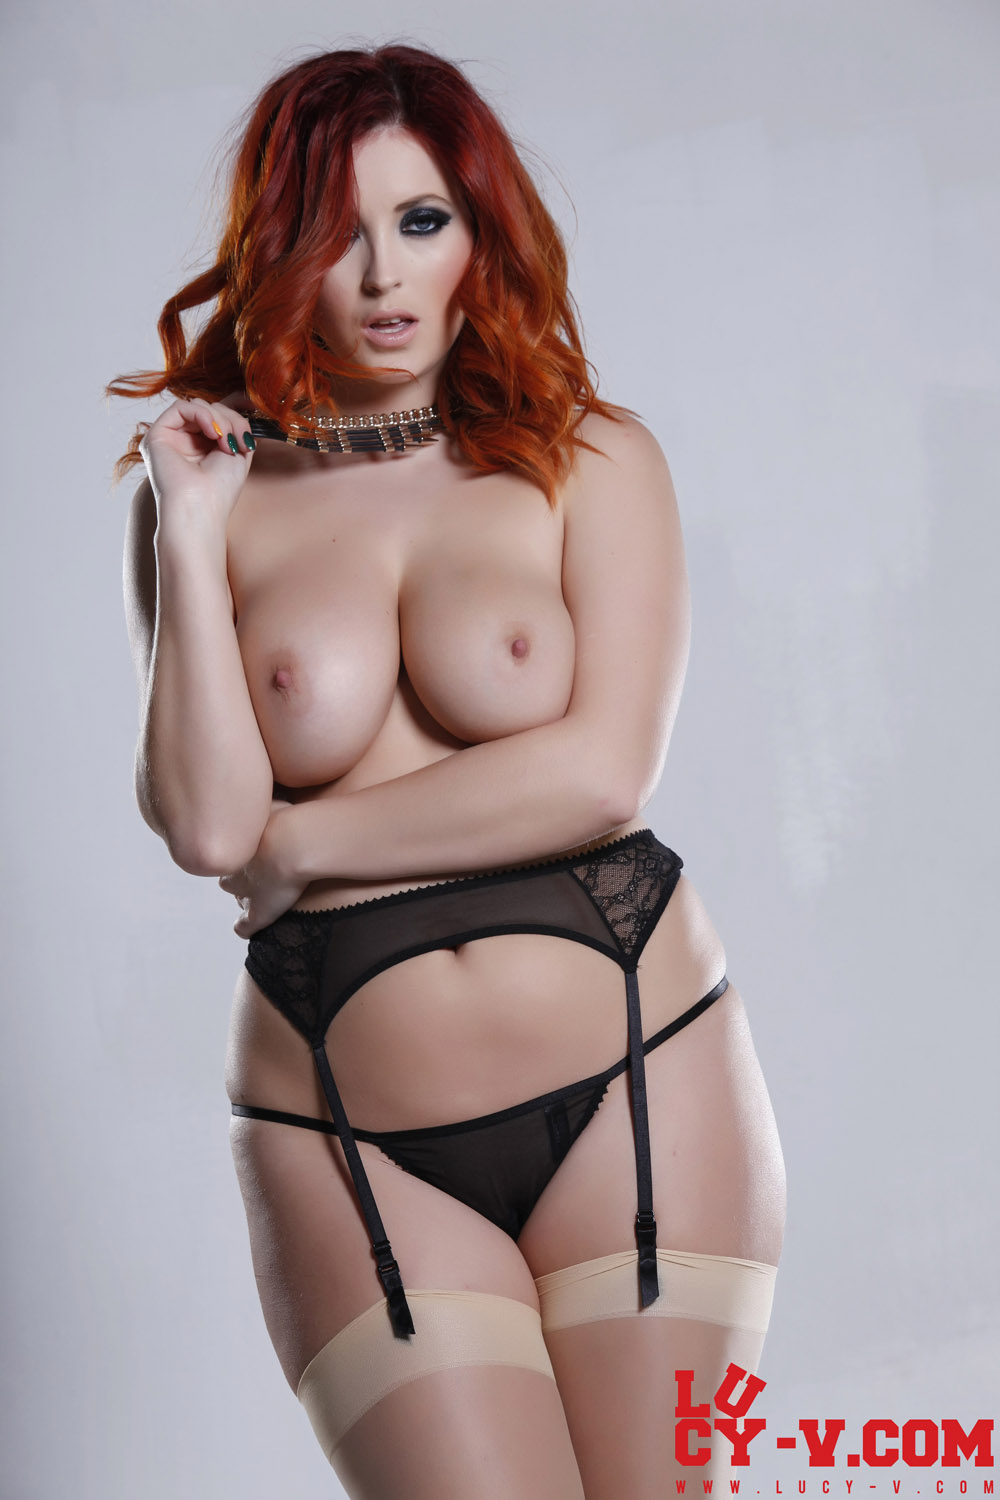 Chubby redhead shaved pussy